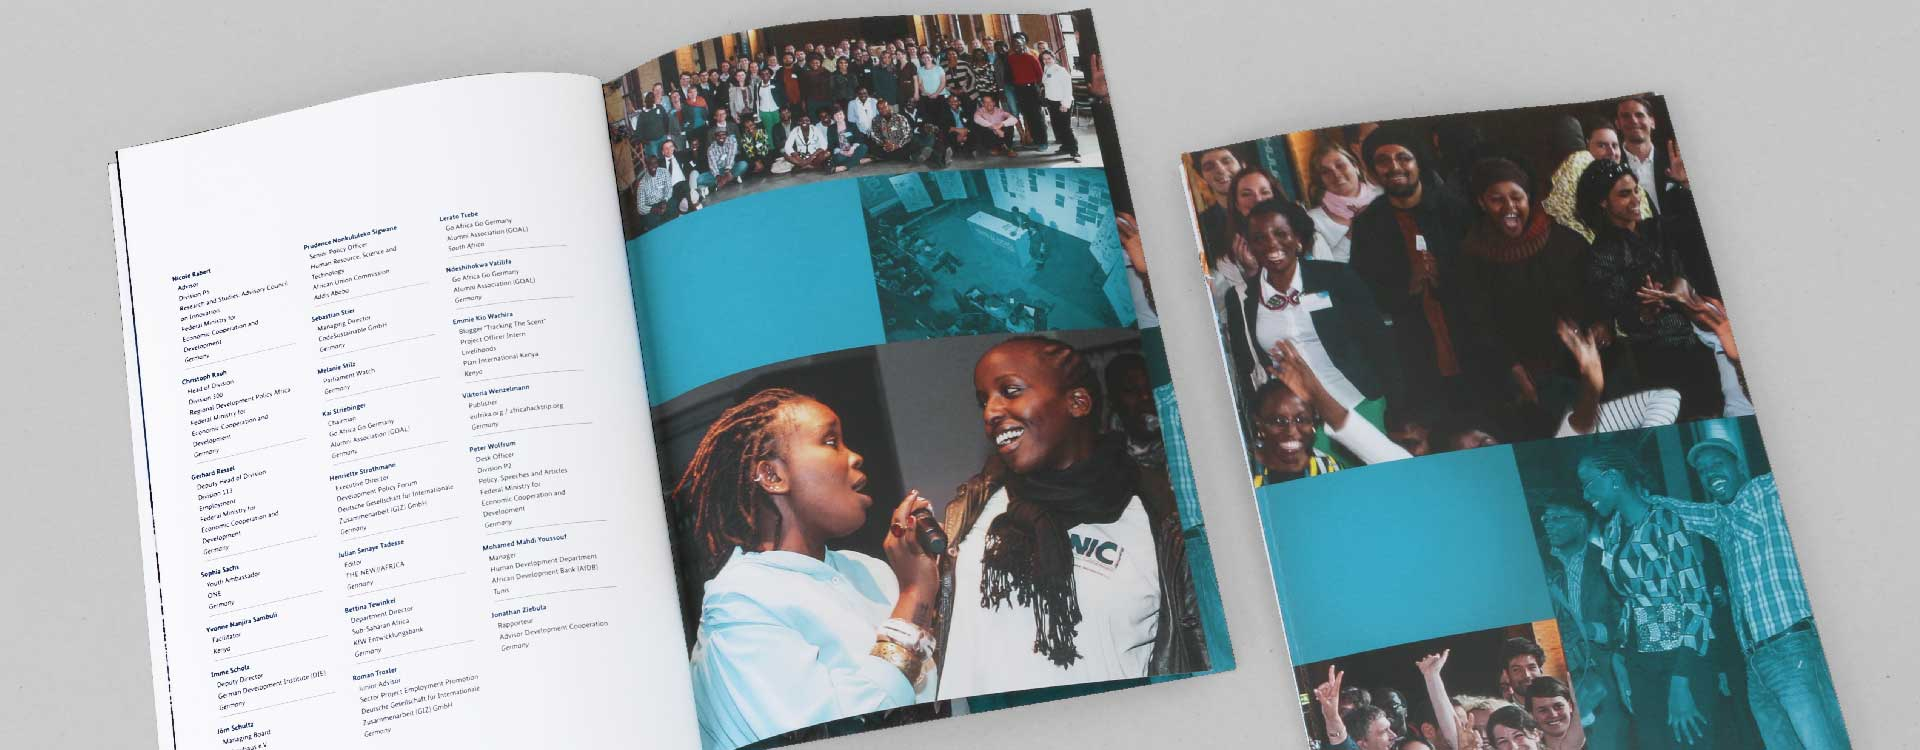 Documentation for the Youth in Africa conference held by the BMZ in the Umspannwerk Kreuzberg, Berlin; Design: Kattrin Richter | Graphic Design Studio